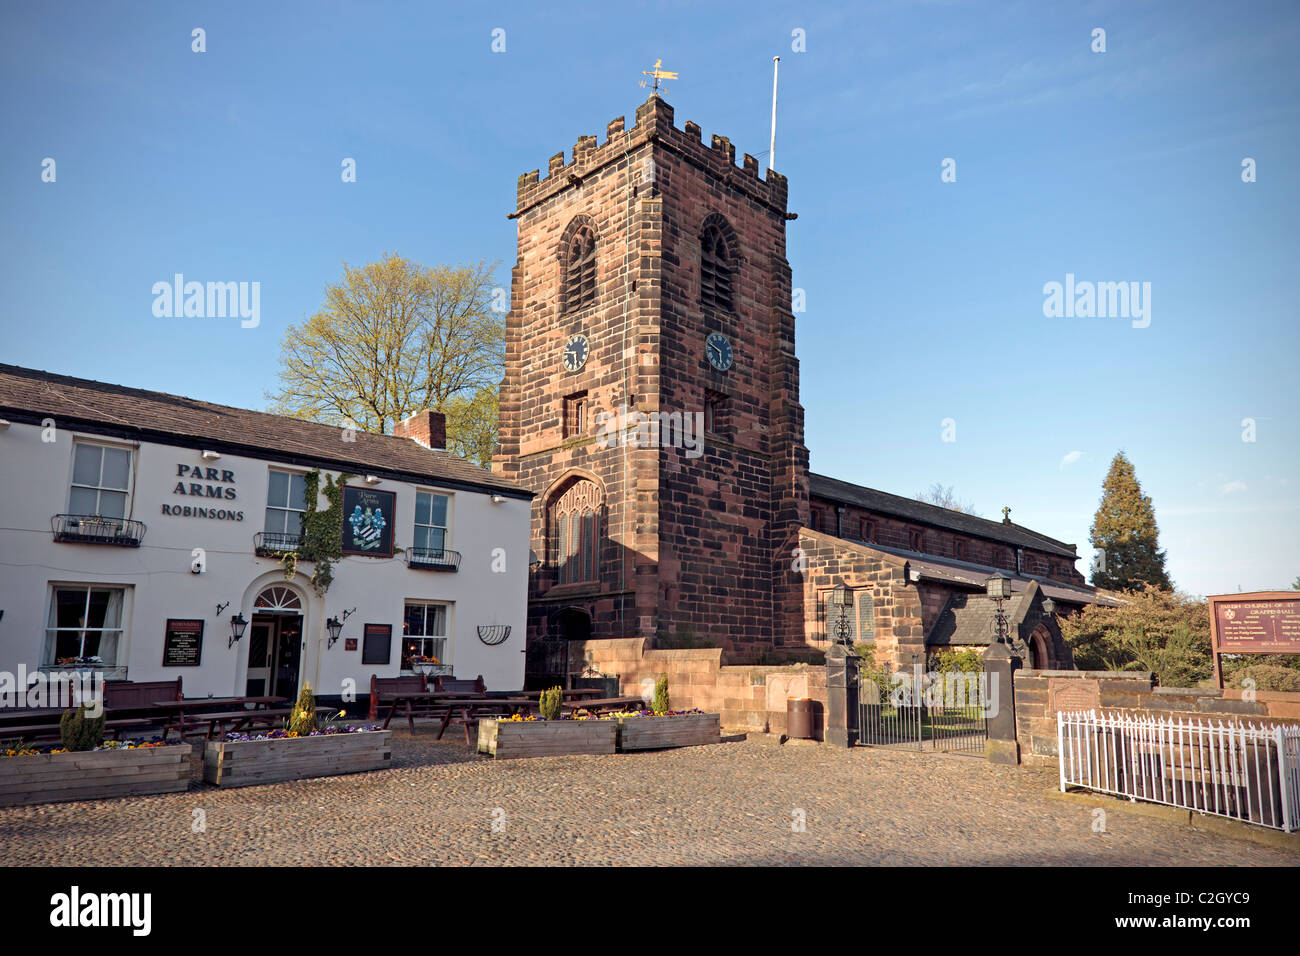 Grappenhall village with St. Wilfrid's church and Parr Arms public house. - Stock Image